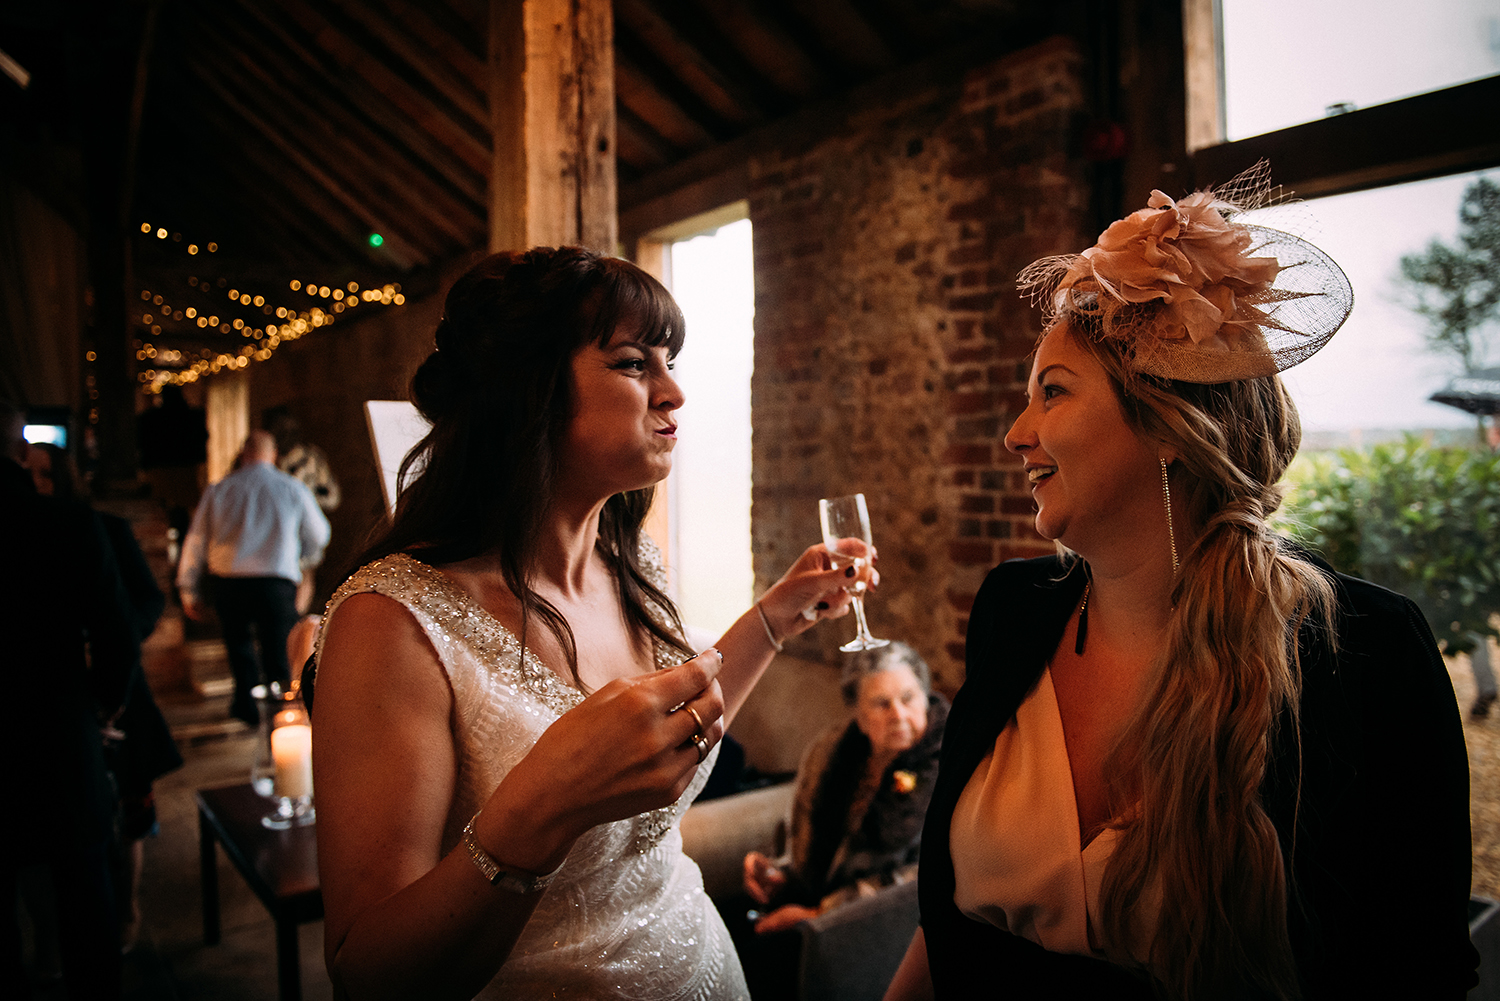 bride and friend laughing with food in mouth